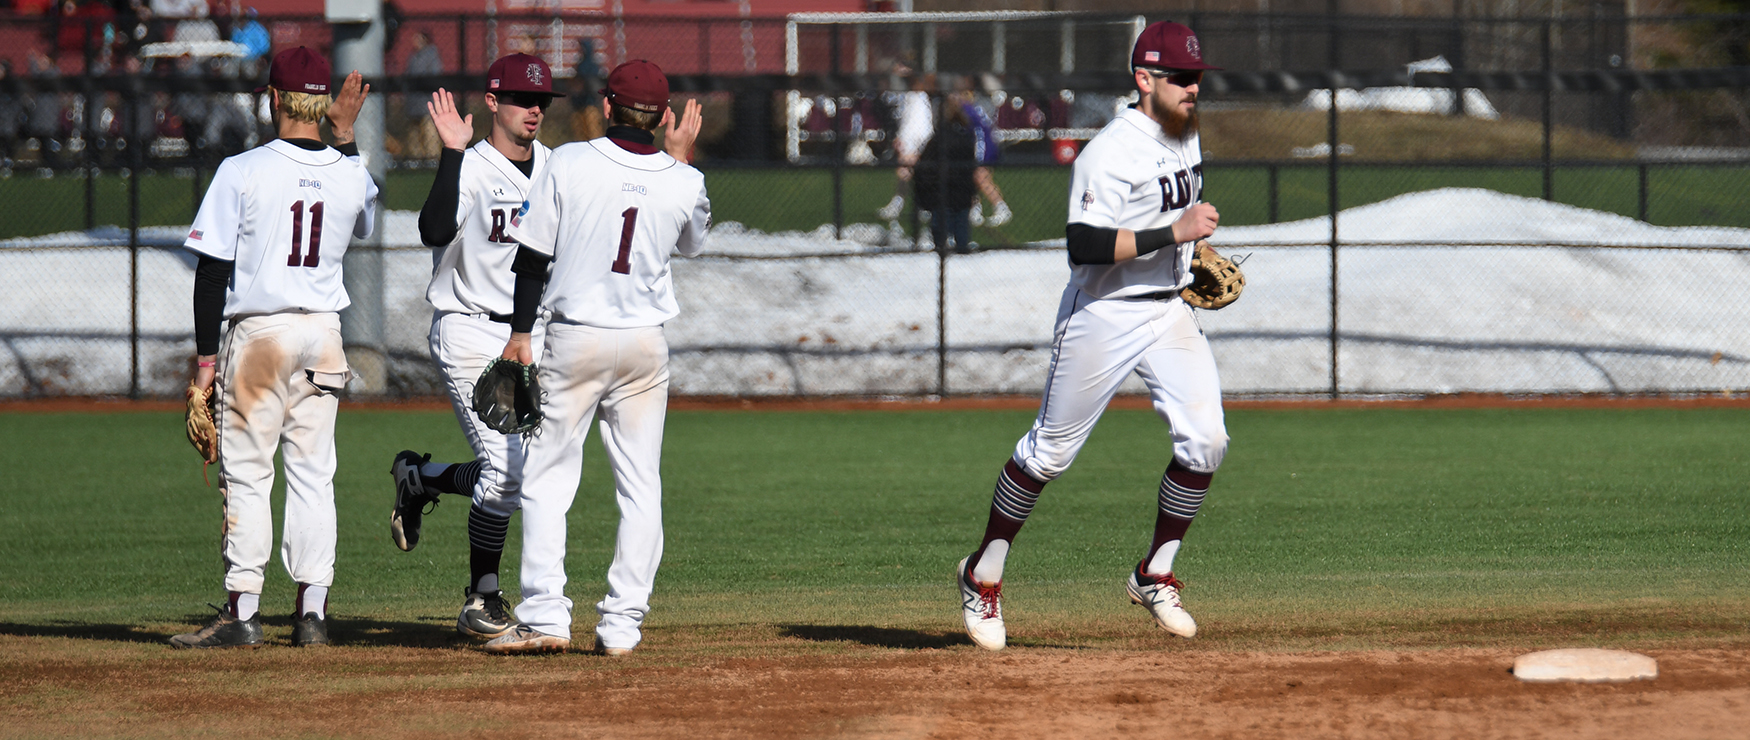 PREVIEW: Baseball Opens Pursuit of Sixth NE10 Title with First-Round Tilt vs. Merrimack